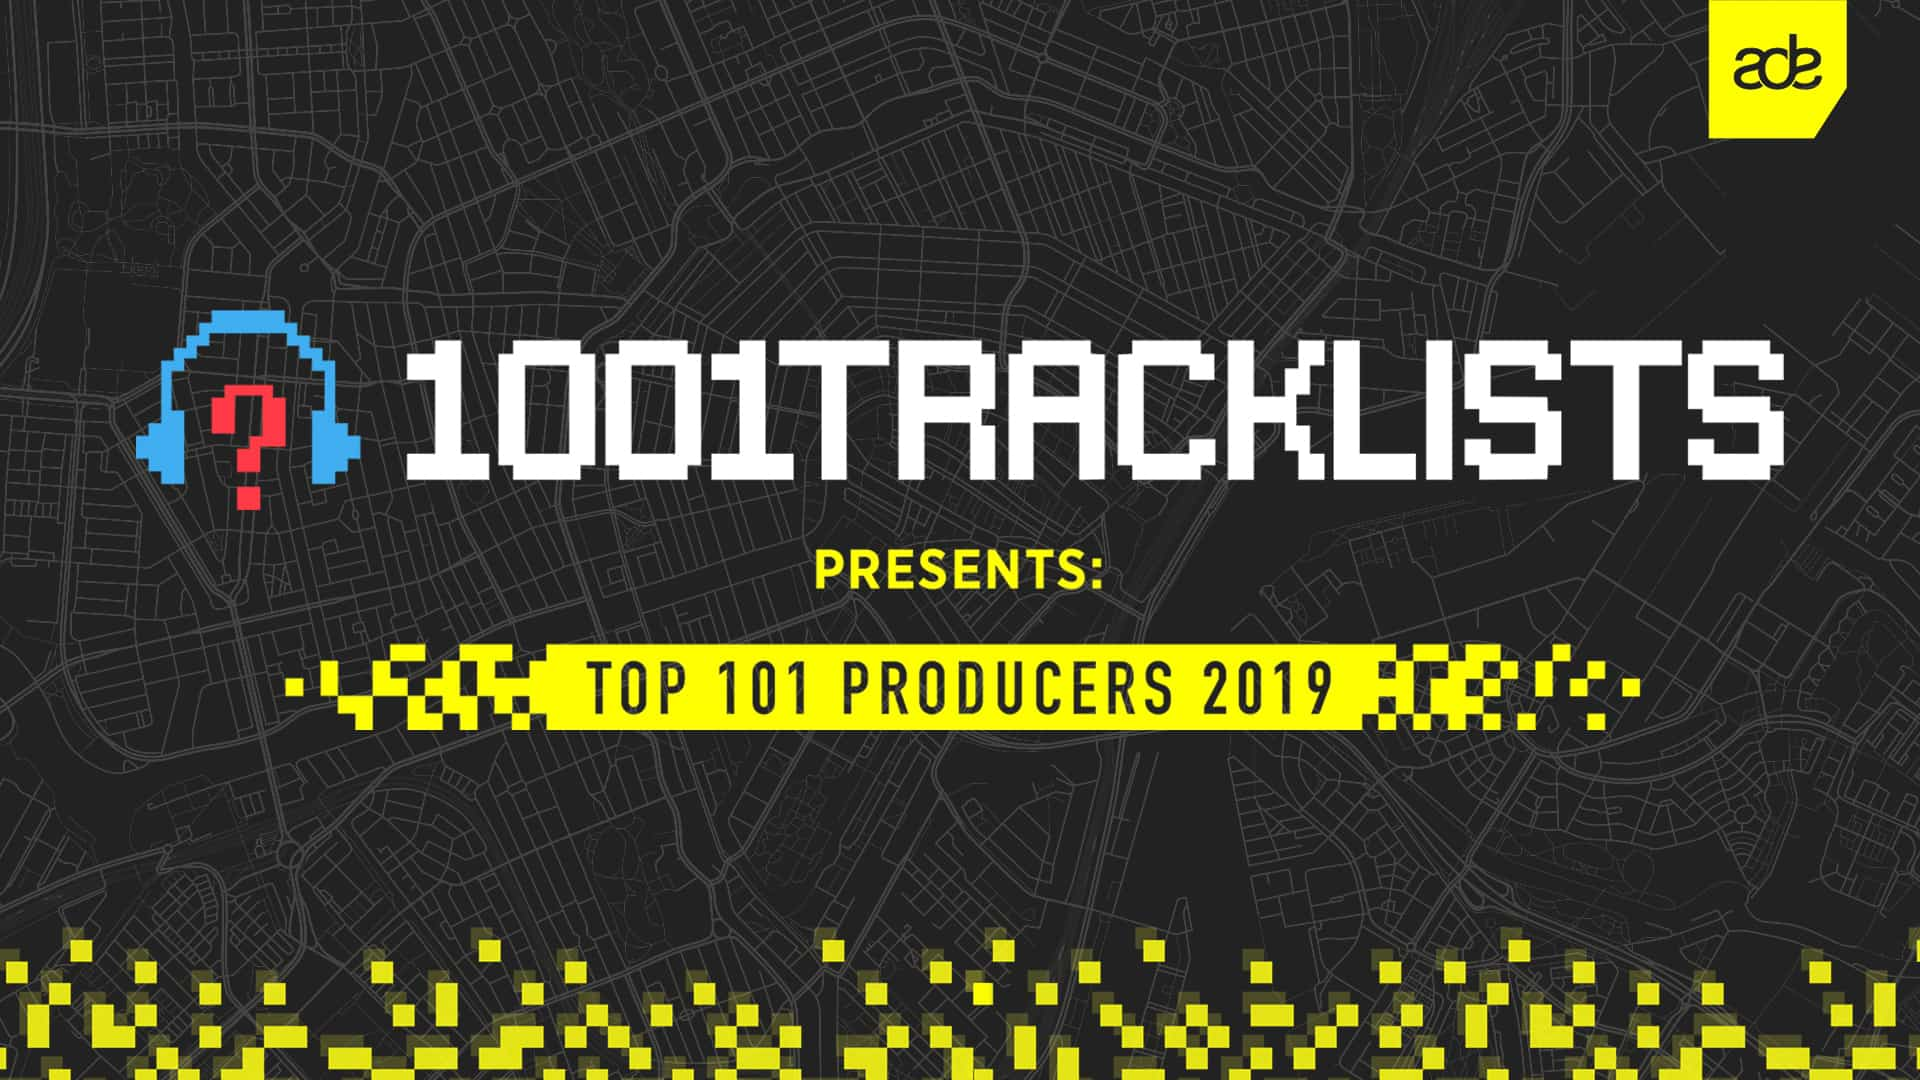 1001Tracklists Presents: Top 101 Producers first ever worldwide livestream during ADE 2019